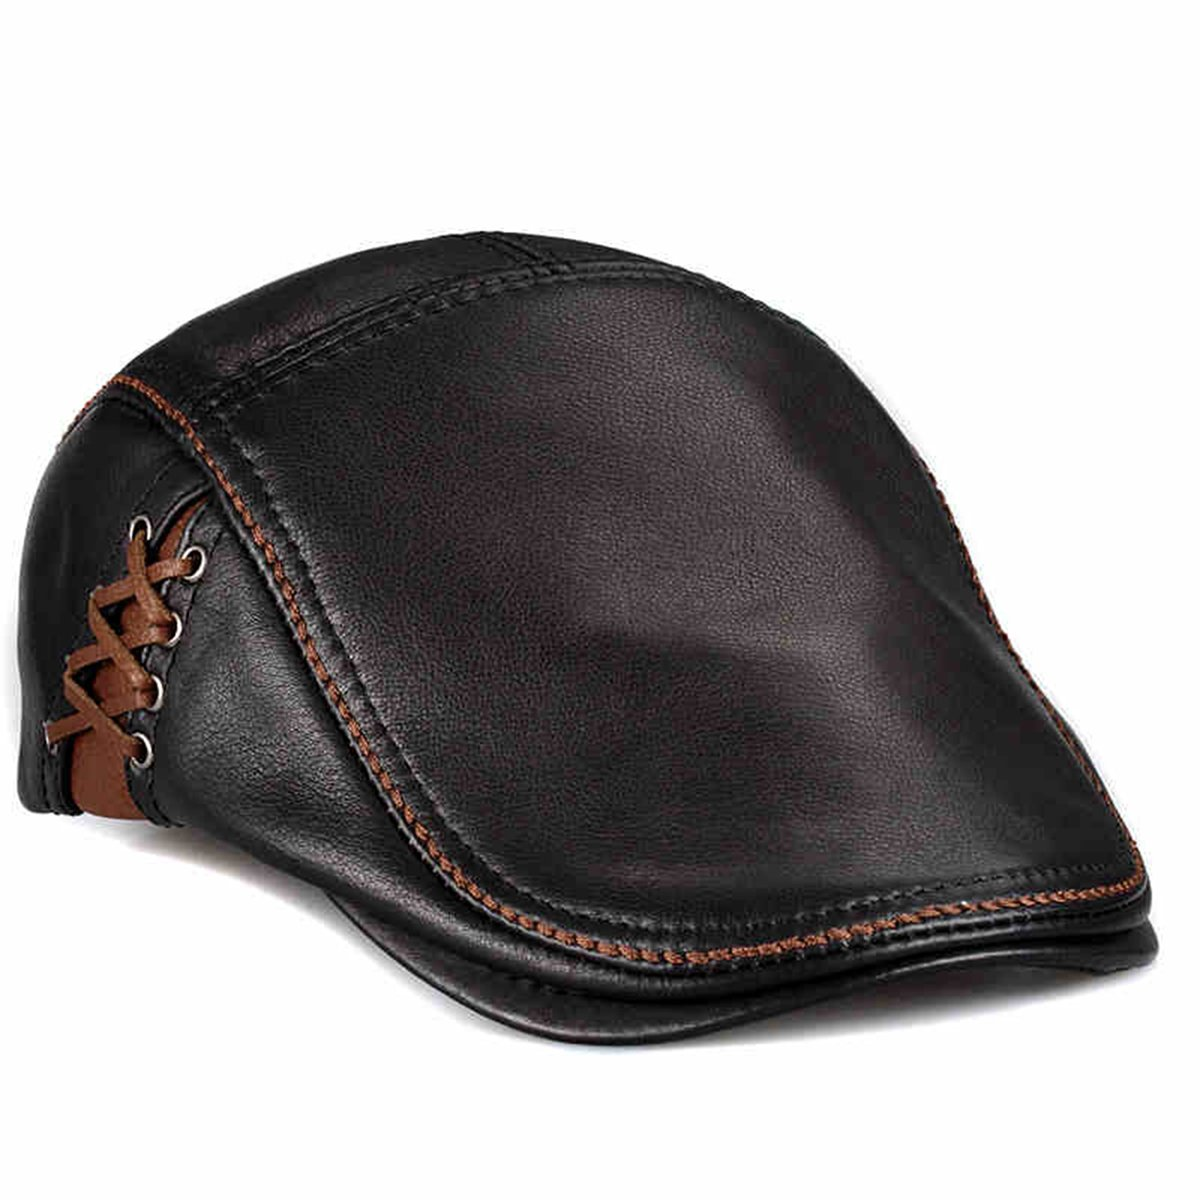 0b3d875b34c LETHMIK Unique Flat Cap Hunting Cowhide Leather Driver Ivy Cap Newsboy Hat  Black product image